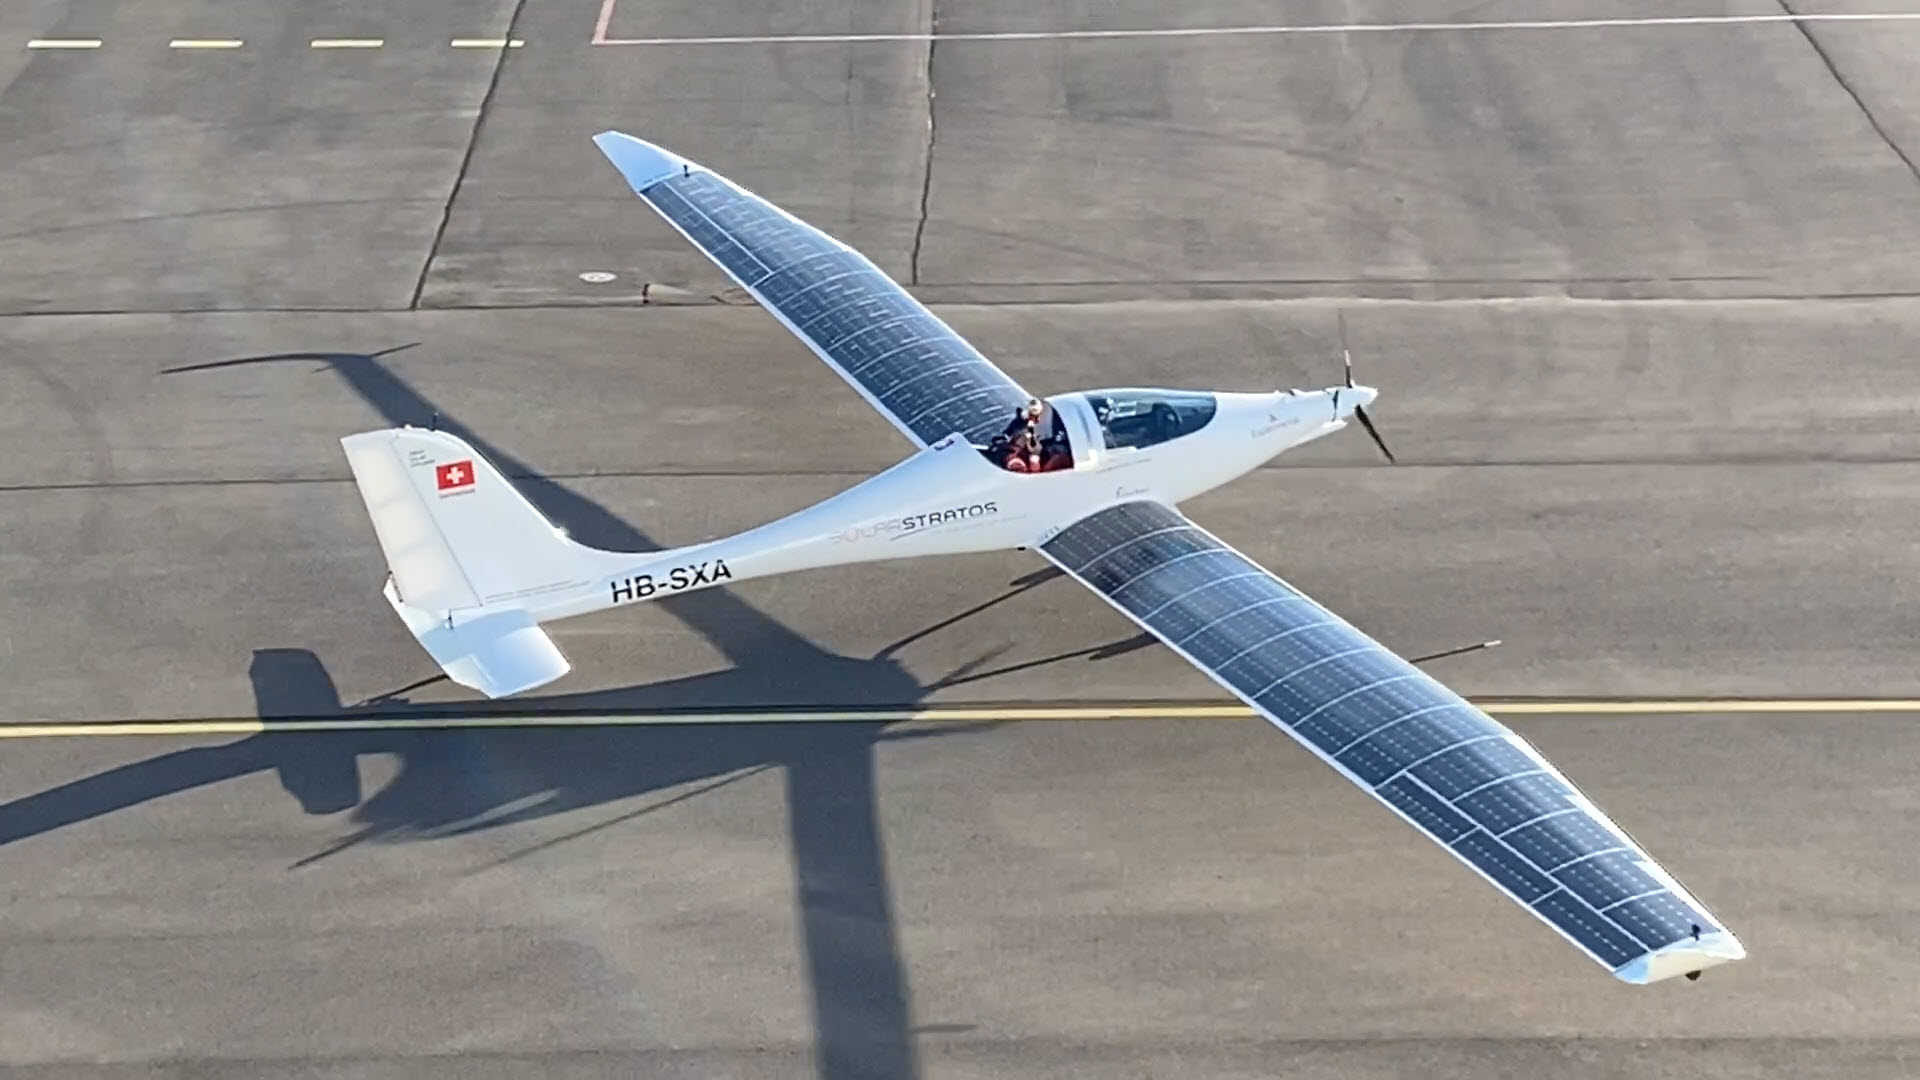 Solarstratos plane on the runway